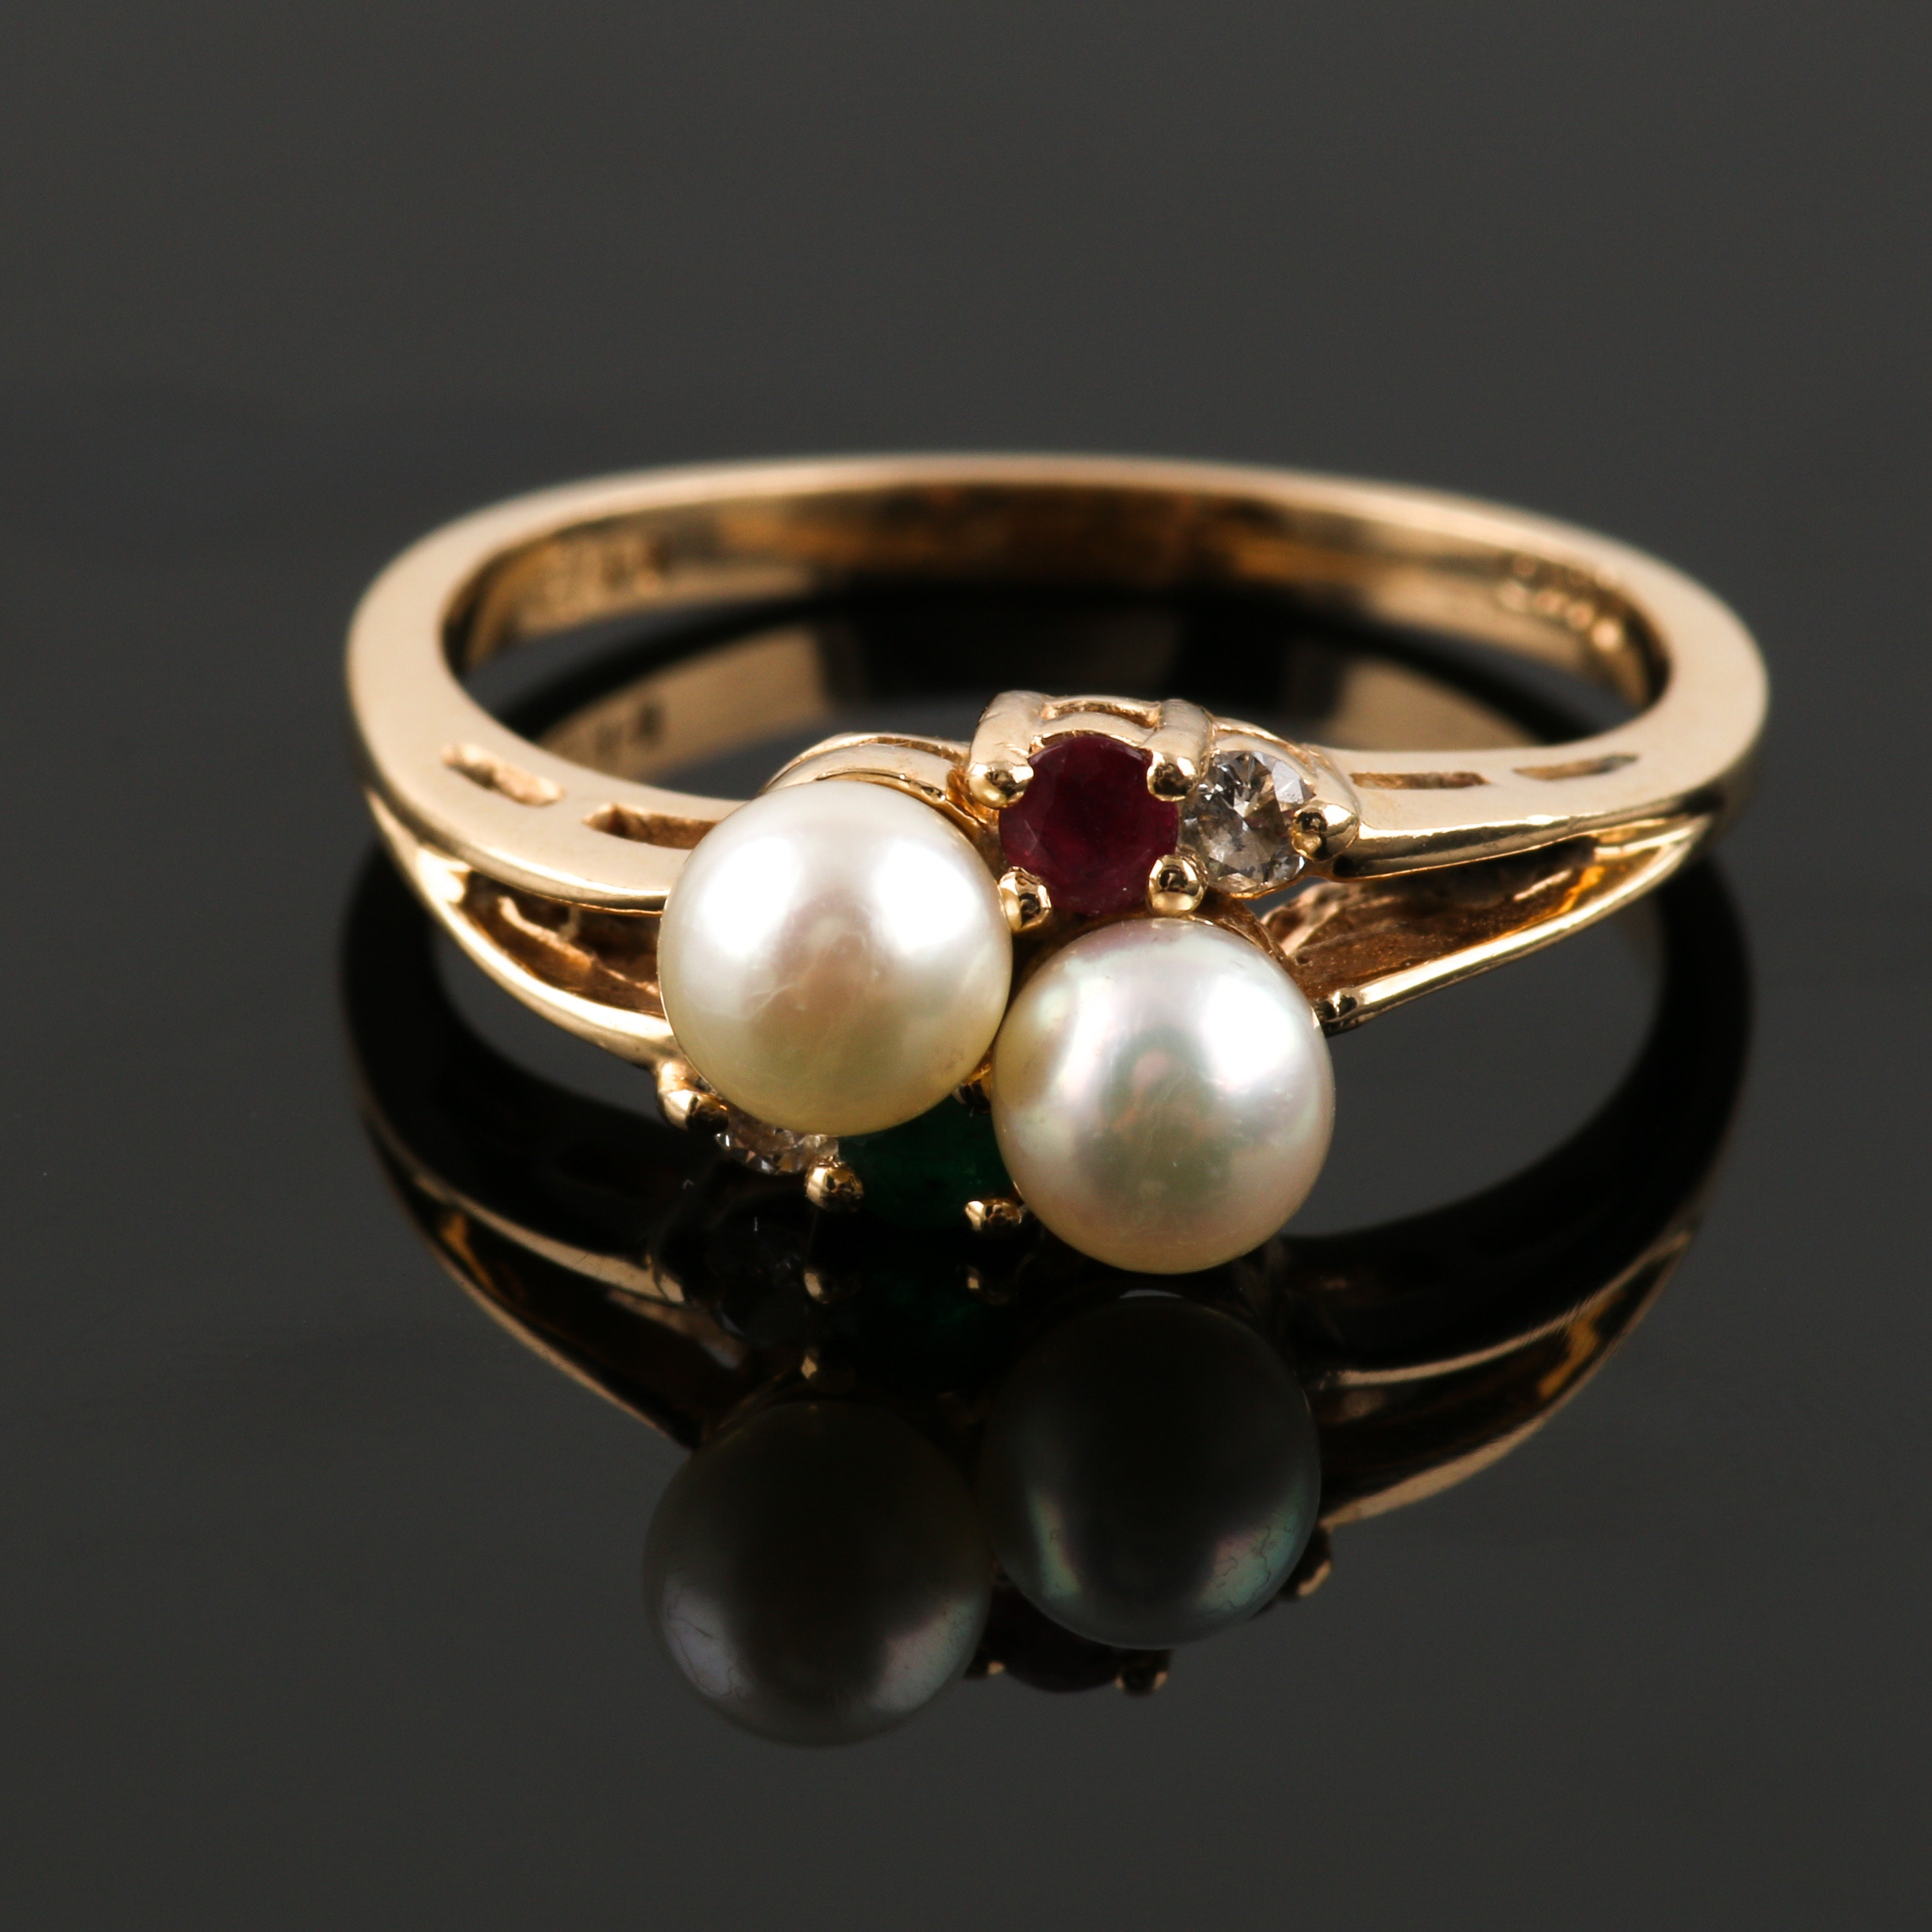 14K Yellow Gold Cultured Pearl, Emerald, Ruby and Diamond Ring